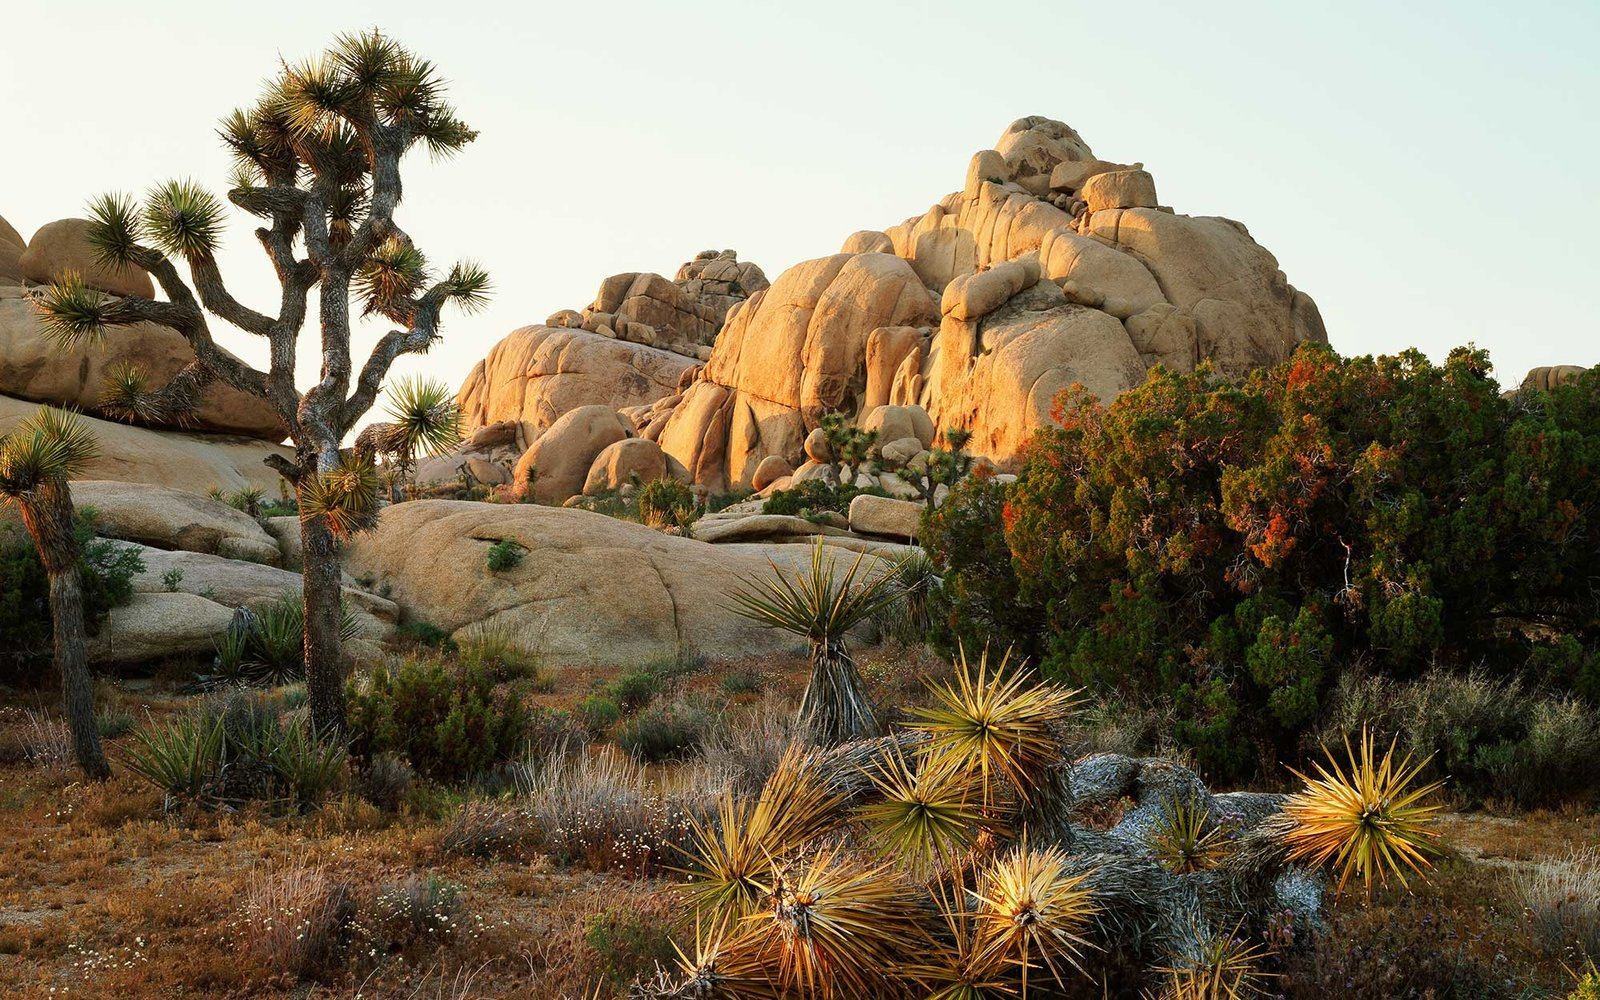 Joshua trees (Yucca brevifolia) at sunrise in Mojave Desert, Joshua Tree National Park, California, USA